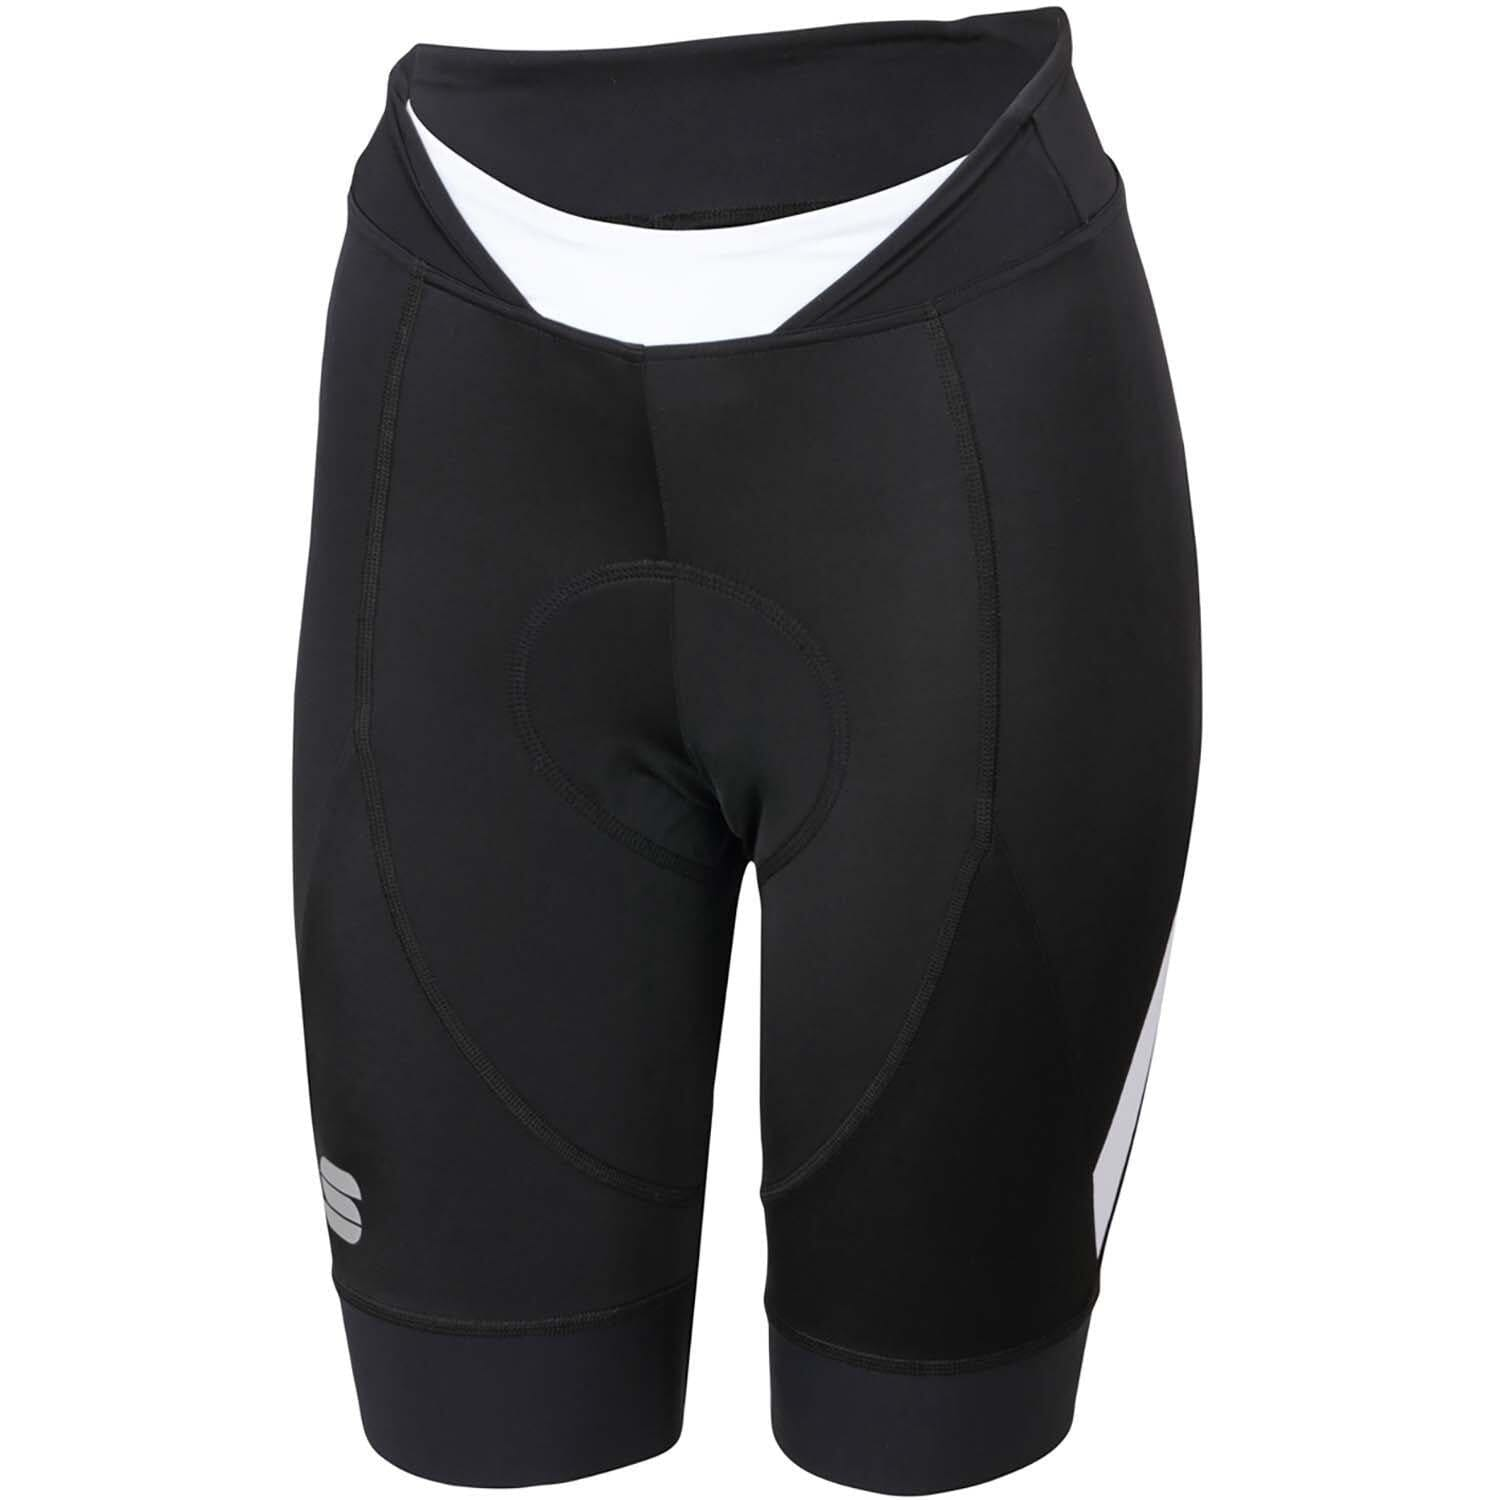 Sportful-Sportful Neo Women's Shorts-Black/White-XS-SF020431021-saddleback-elite-performance-cycling